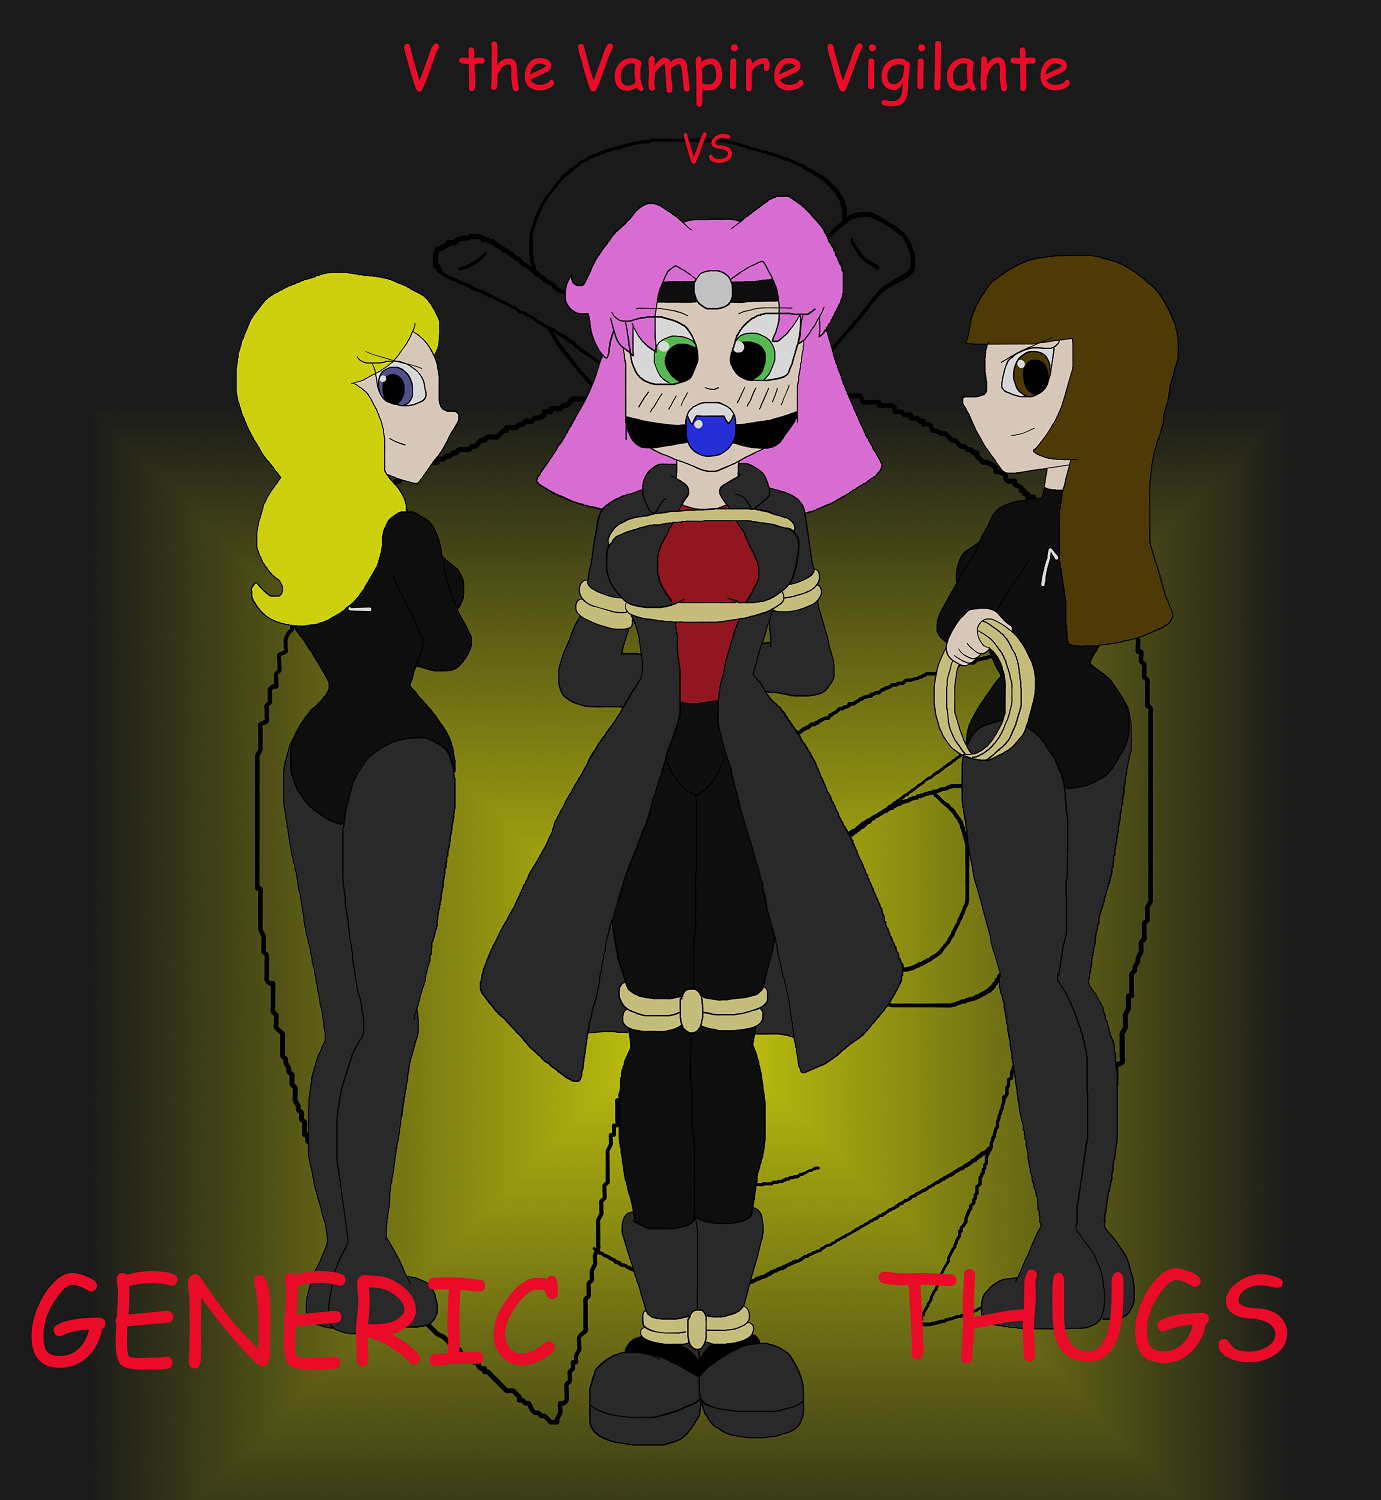 V the Vampire Vigilante vs Generic Thugs